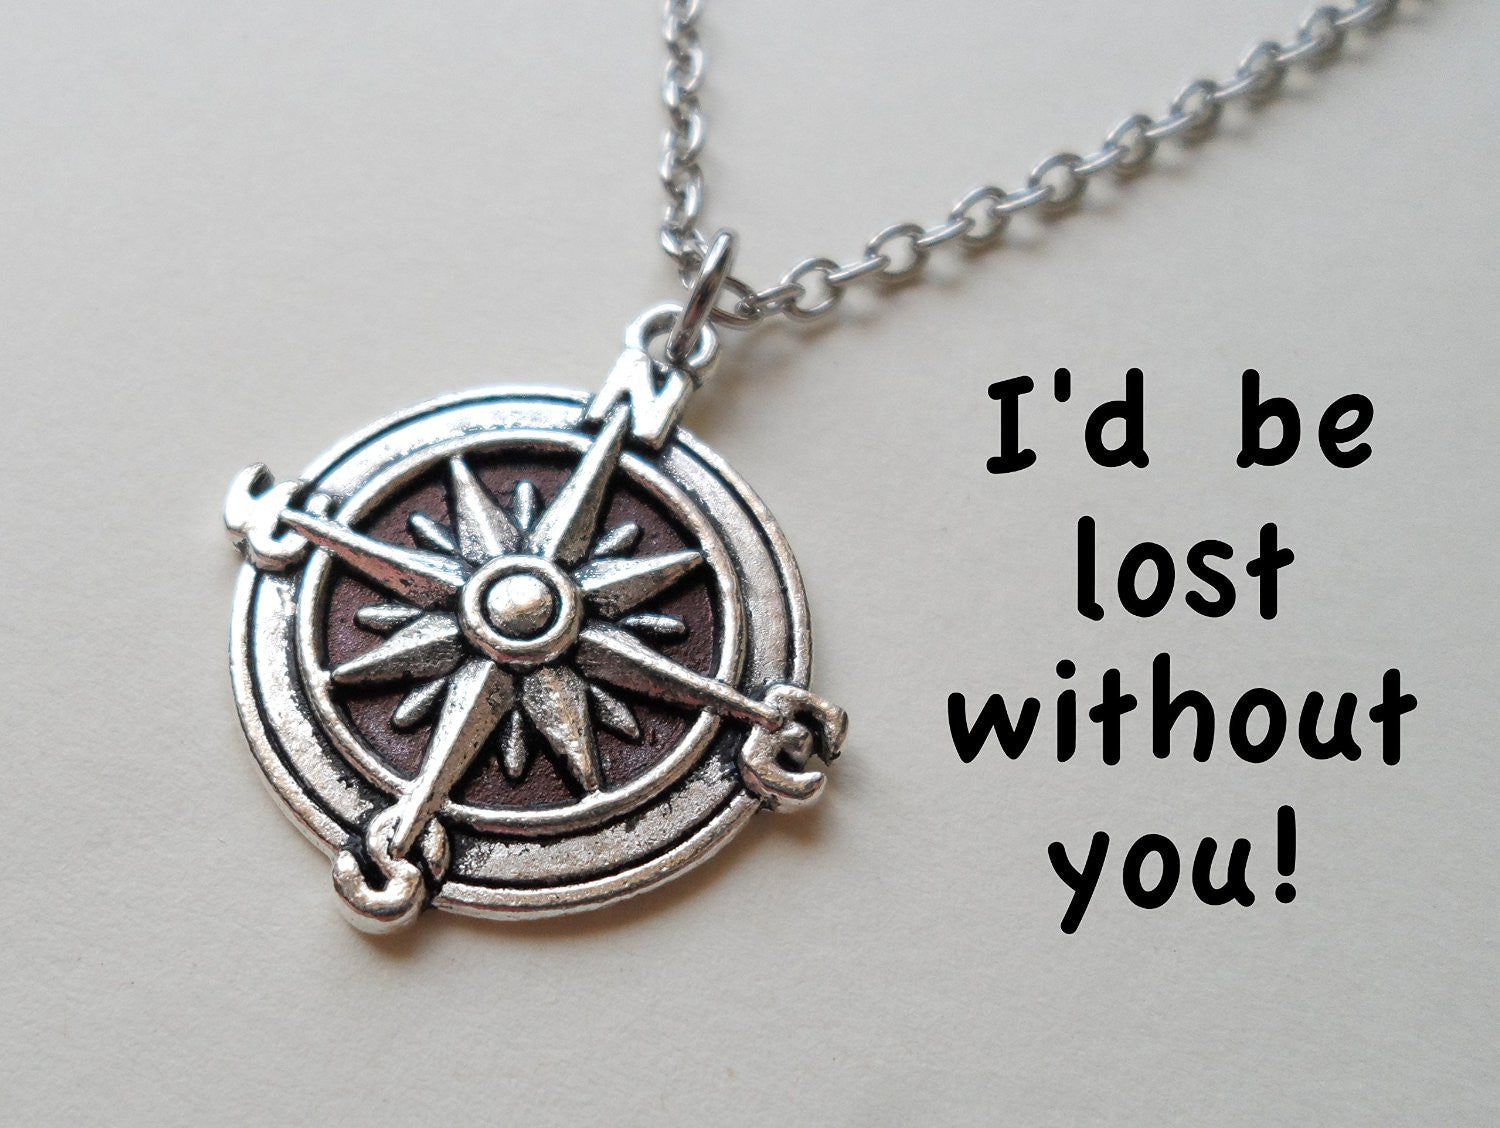 products necklace wanderlust north adventure friendship true gold compass